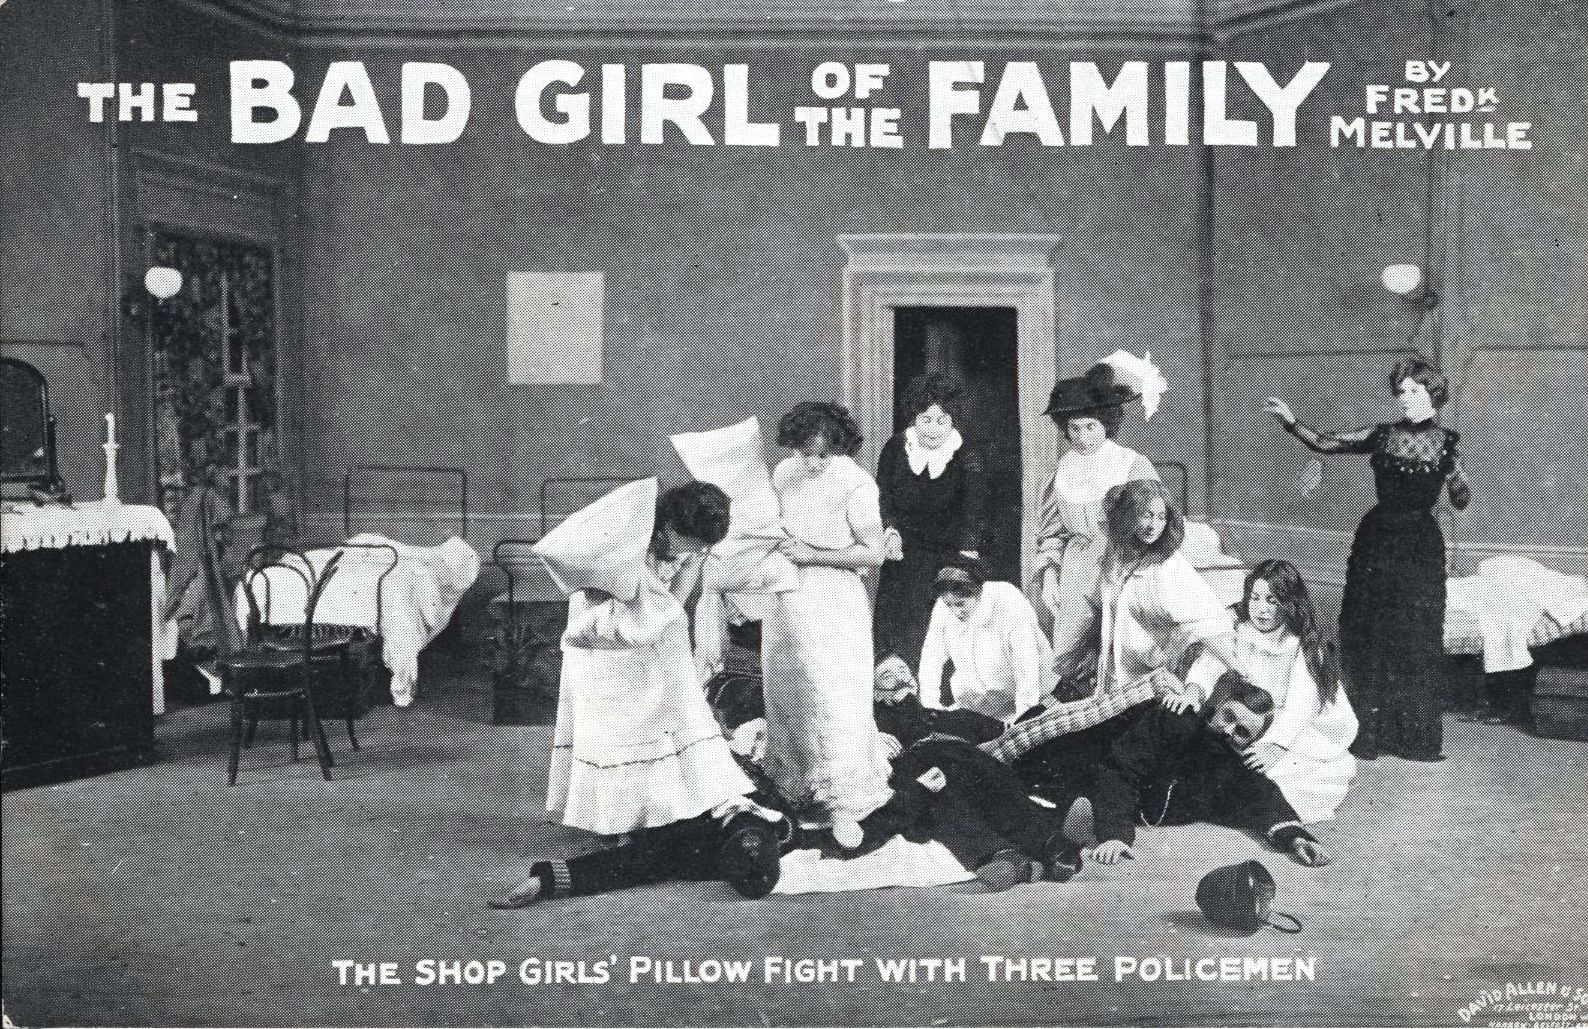 Black and white postcard photograph publicising 'The Bad Girl of the Family' by Frederick Melville, and showing a scene from the play